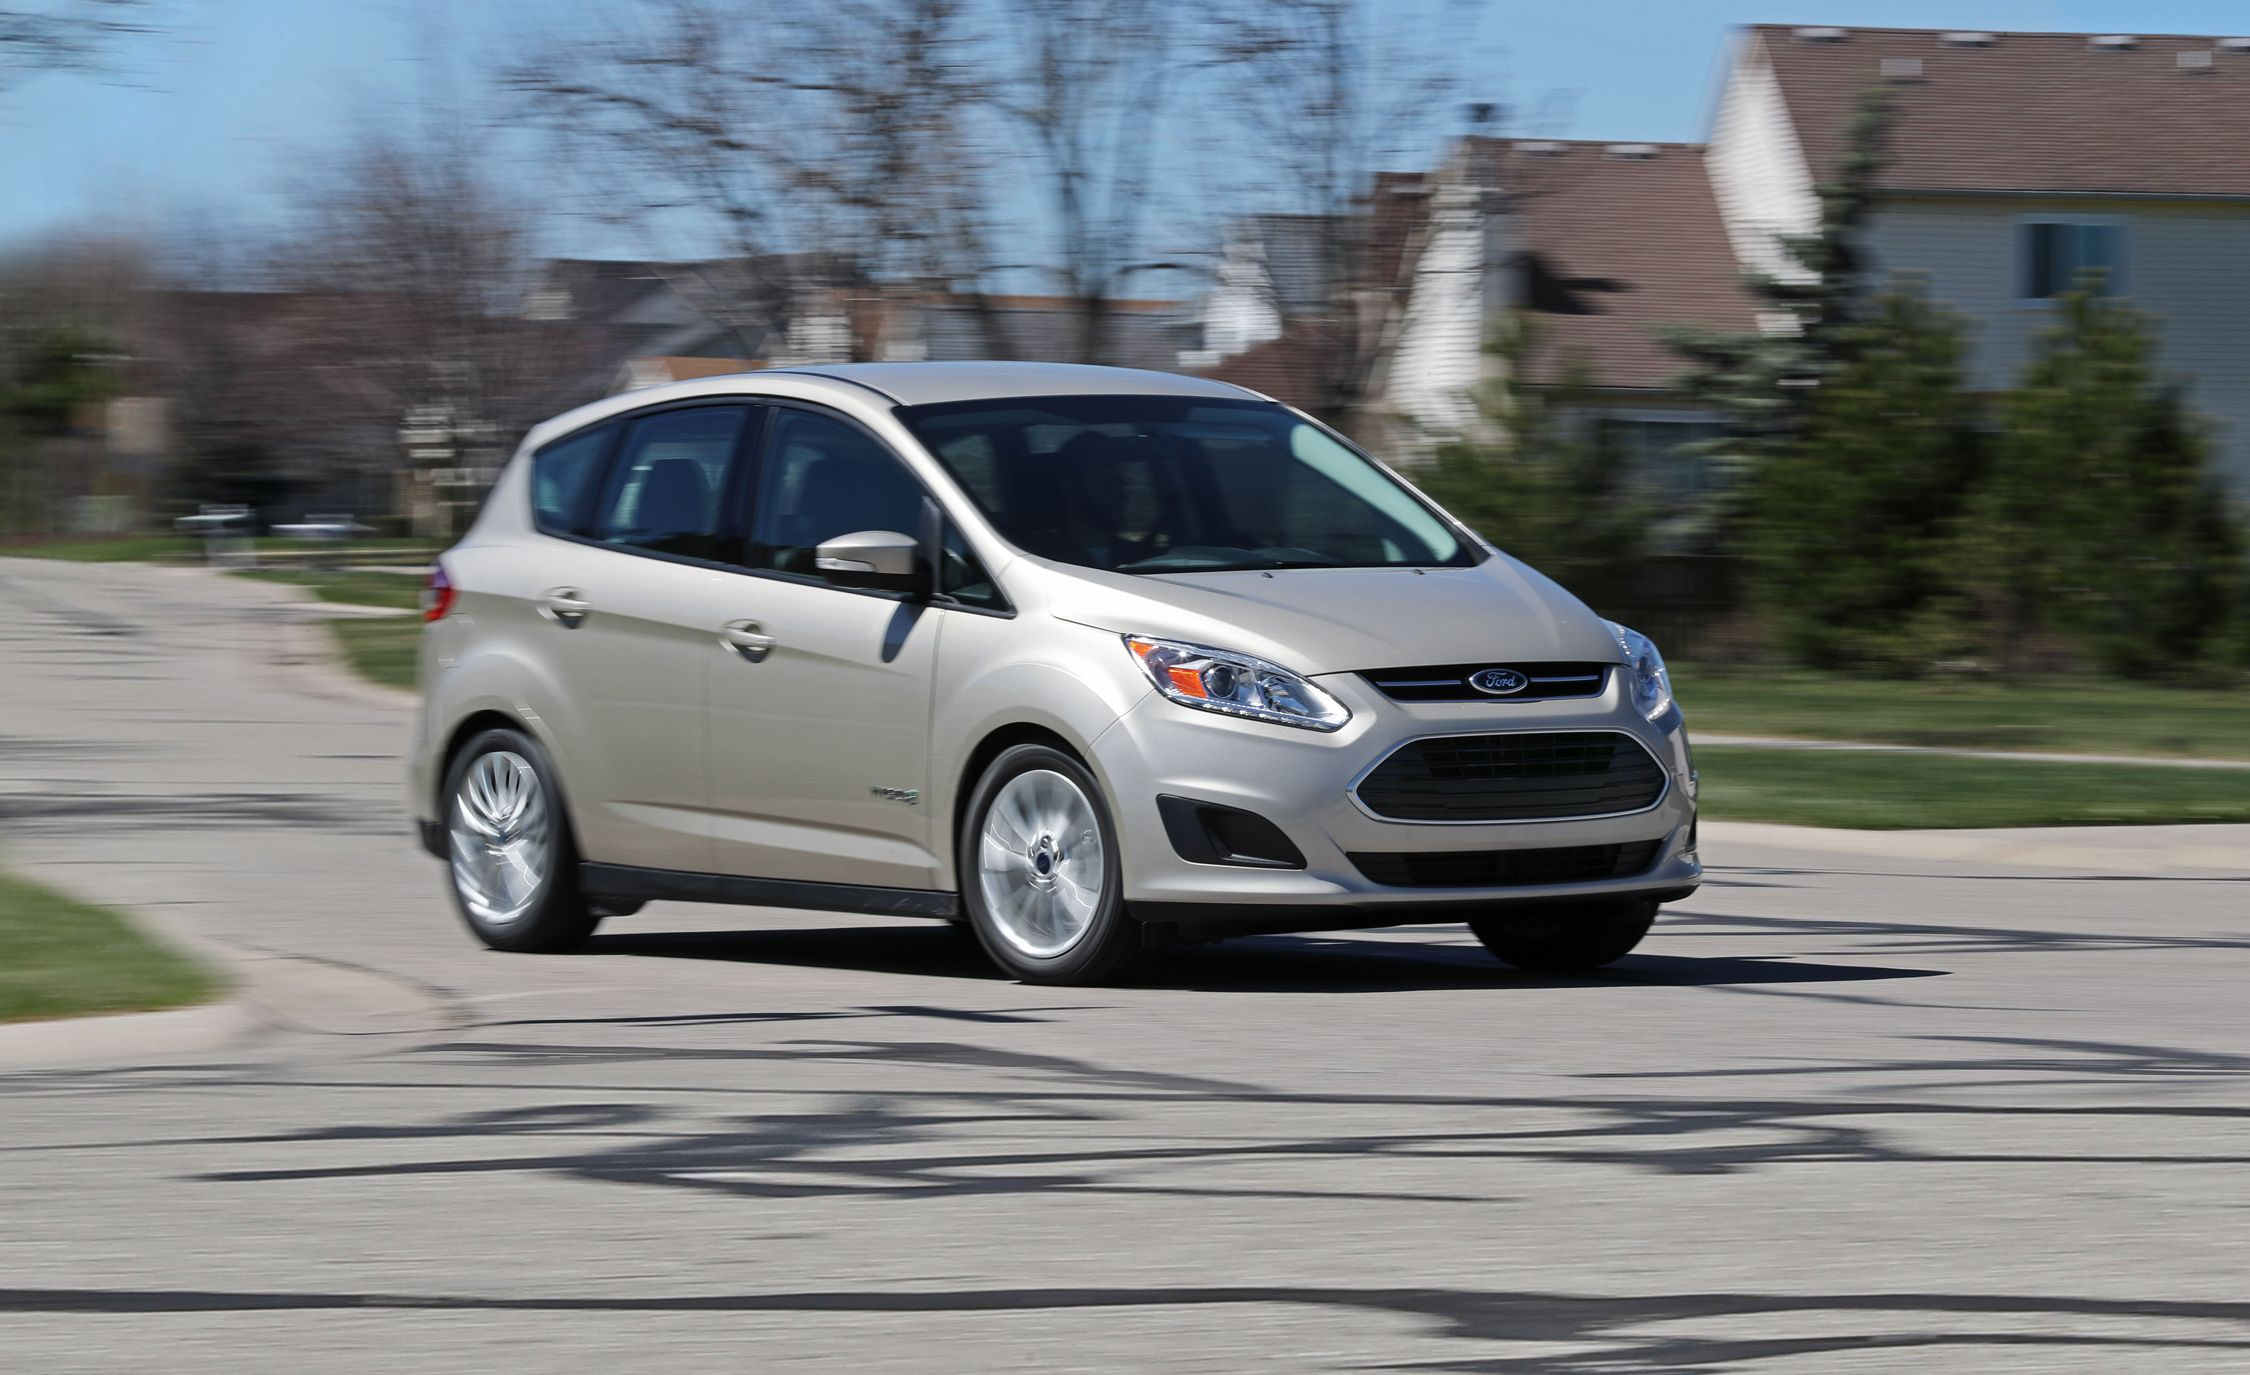 ford c max reviews ford c max price photos and specs. Black Bedroom Furniture Sets. Home Design Ideas